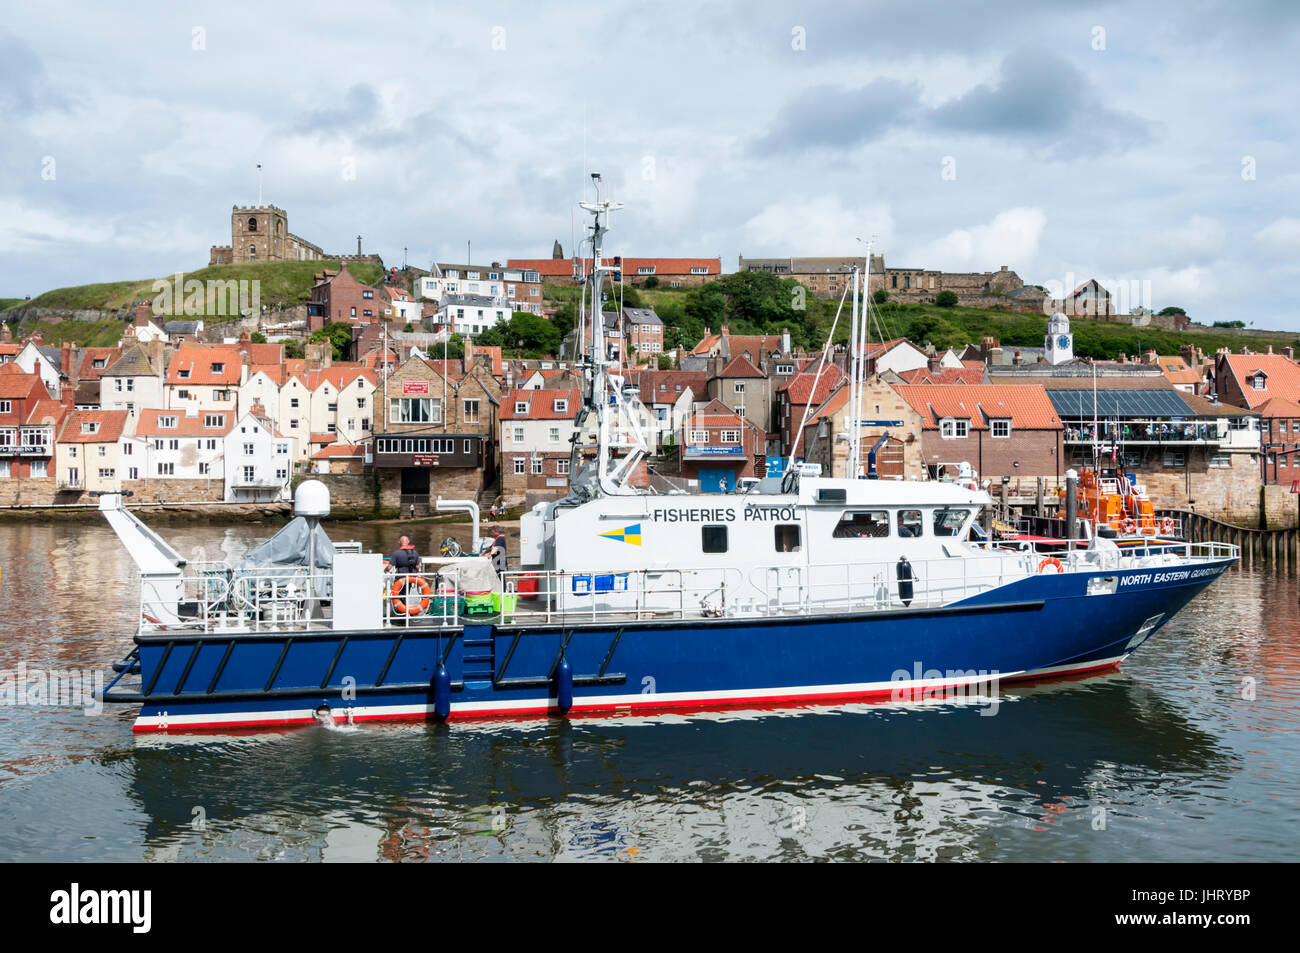 North Eastern Guardian III, a fisheries patrol vessel of the UK Inshore Fisheries and Conservation Authority, in - Stock Image